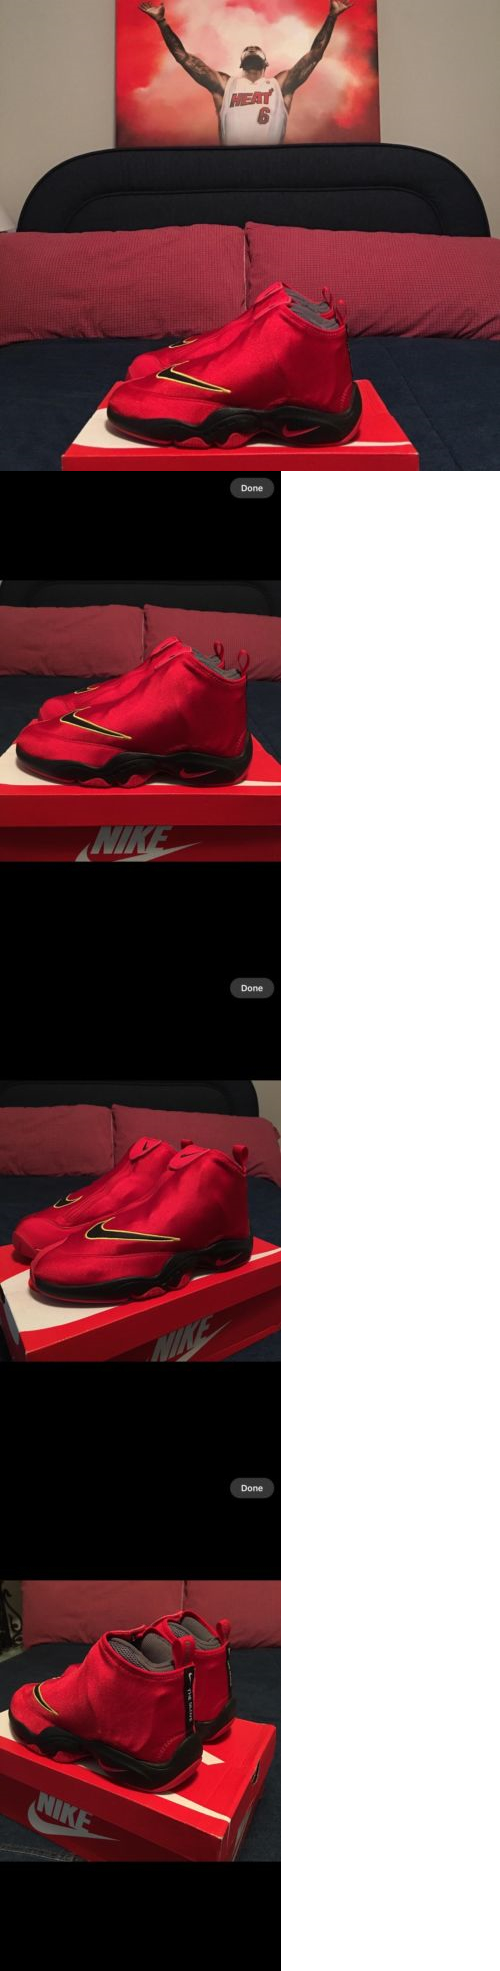 0a3afd44ee706 Mens Shoes 45054  Nike Air Zoom Flight The Glove University Red Black Grey  Sz 10.5